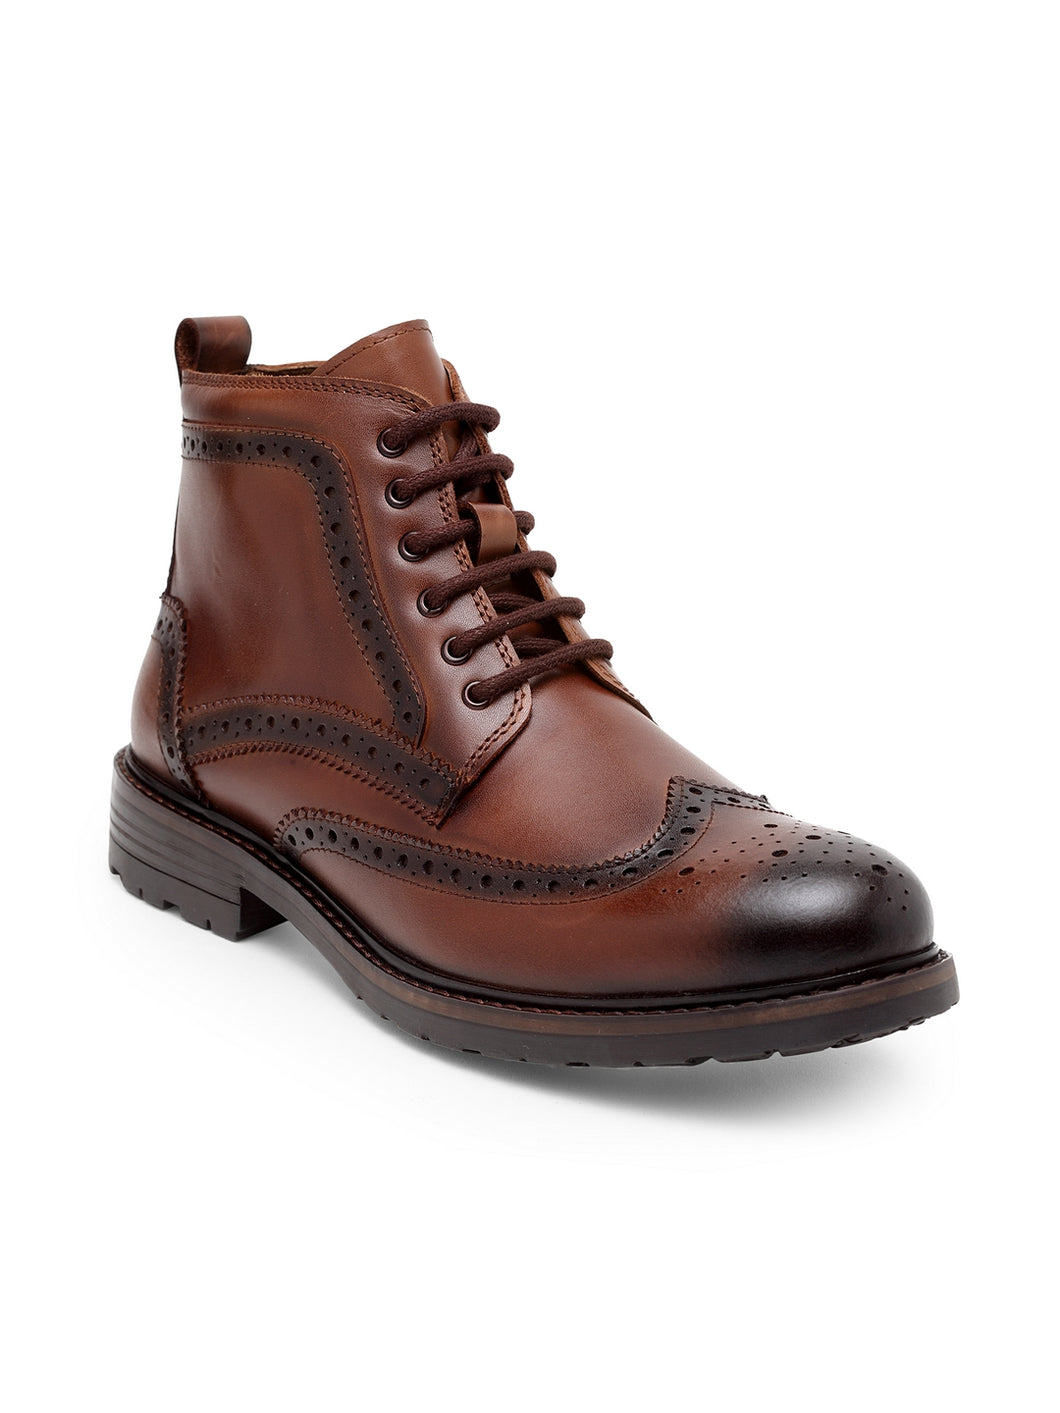 Teakwood Men Genuine Leather Mid top Brouges Boots